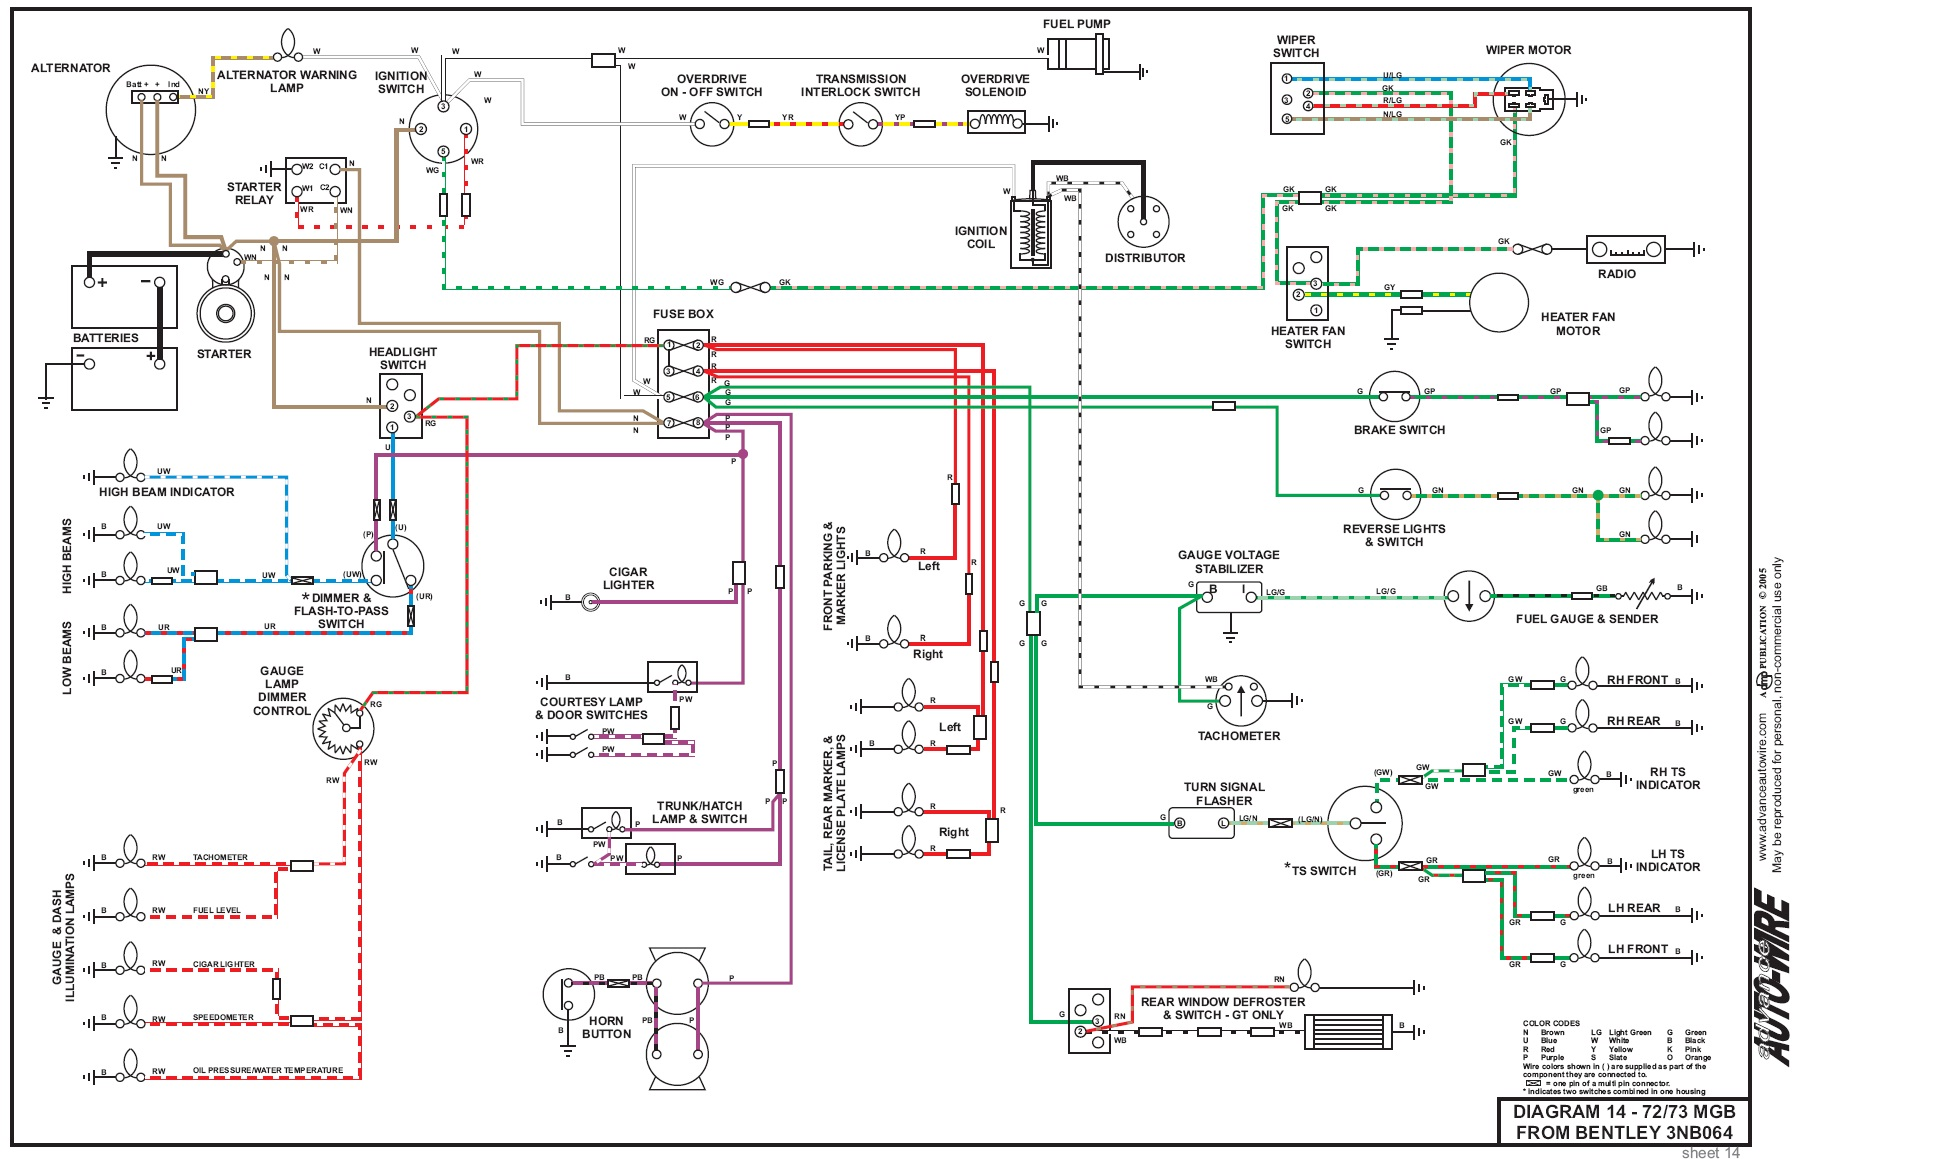 hight resolution of pictures of the mgb alternator wiring harness wiring diagram inside 1974 mgb alternator wiring